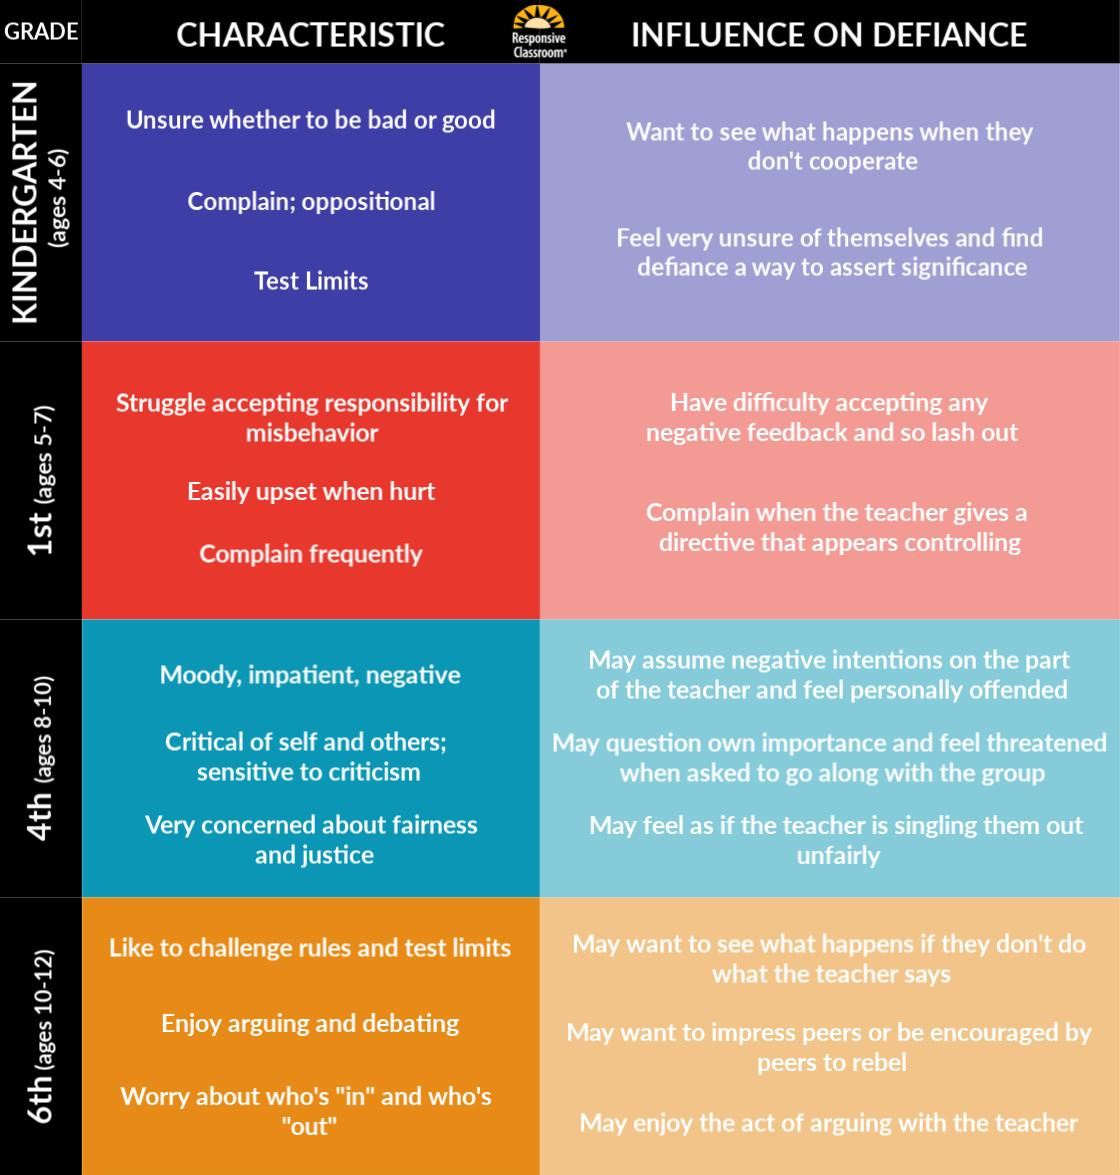 Some Child Development Characteristics Related to Defiance: